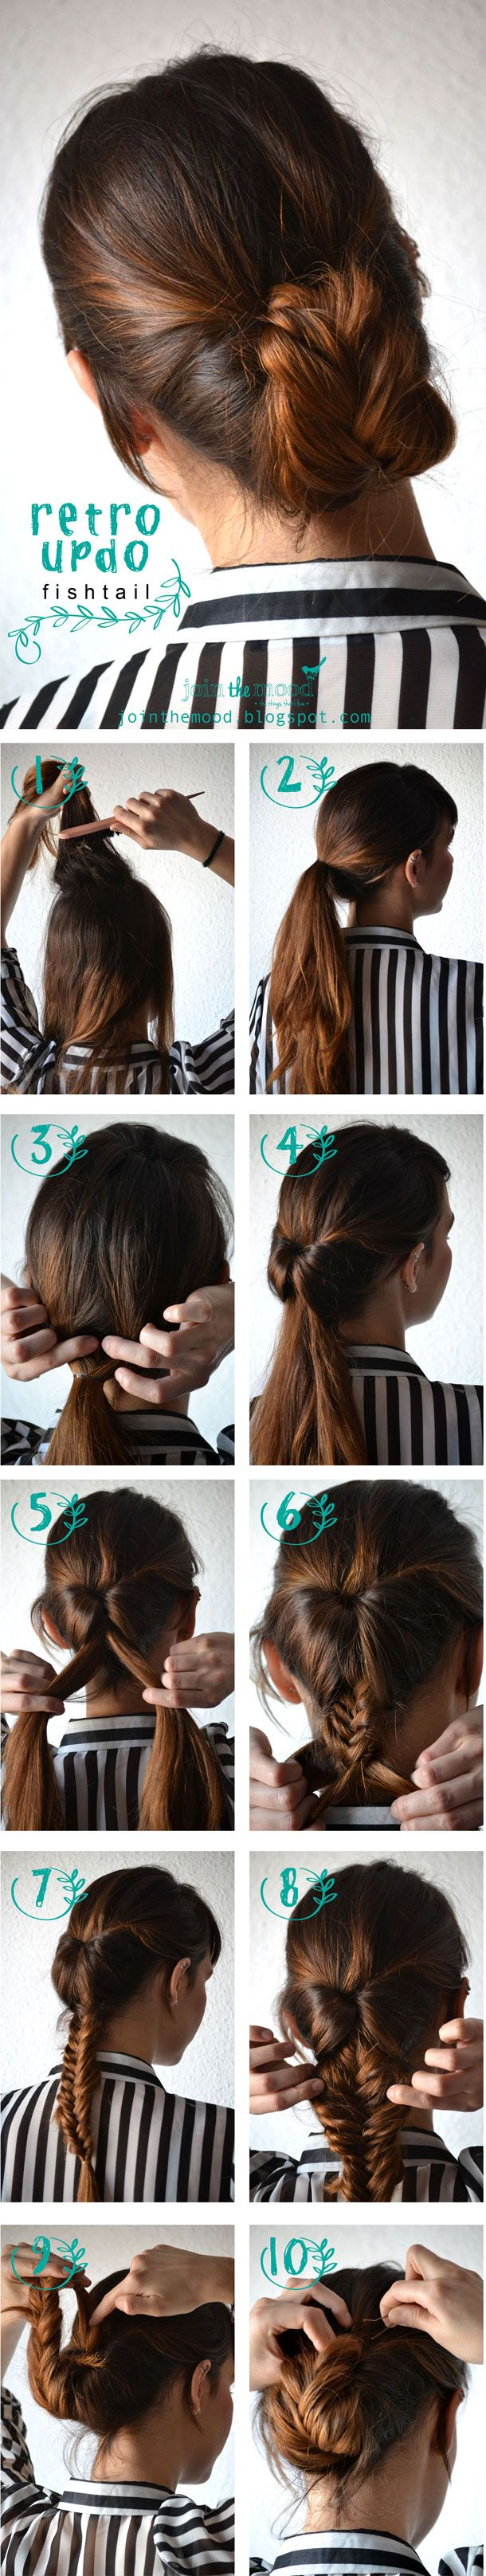 RETRO UPDO FISHTAIL. Hairstyles | Kenra Professional Inspiration Could also do with a regular braid